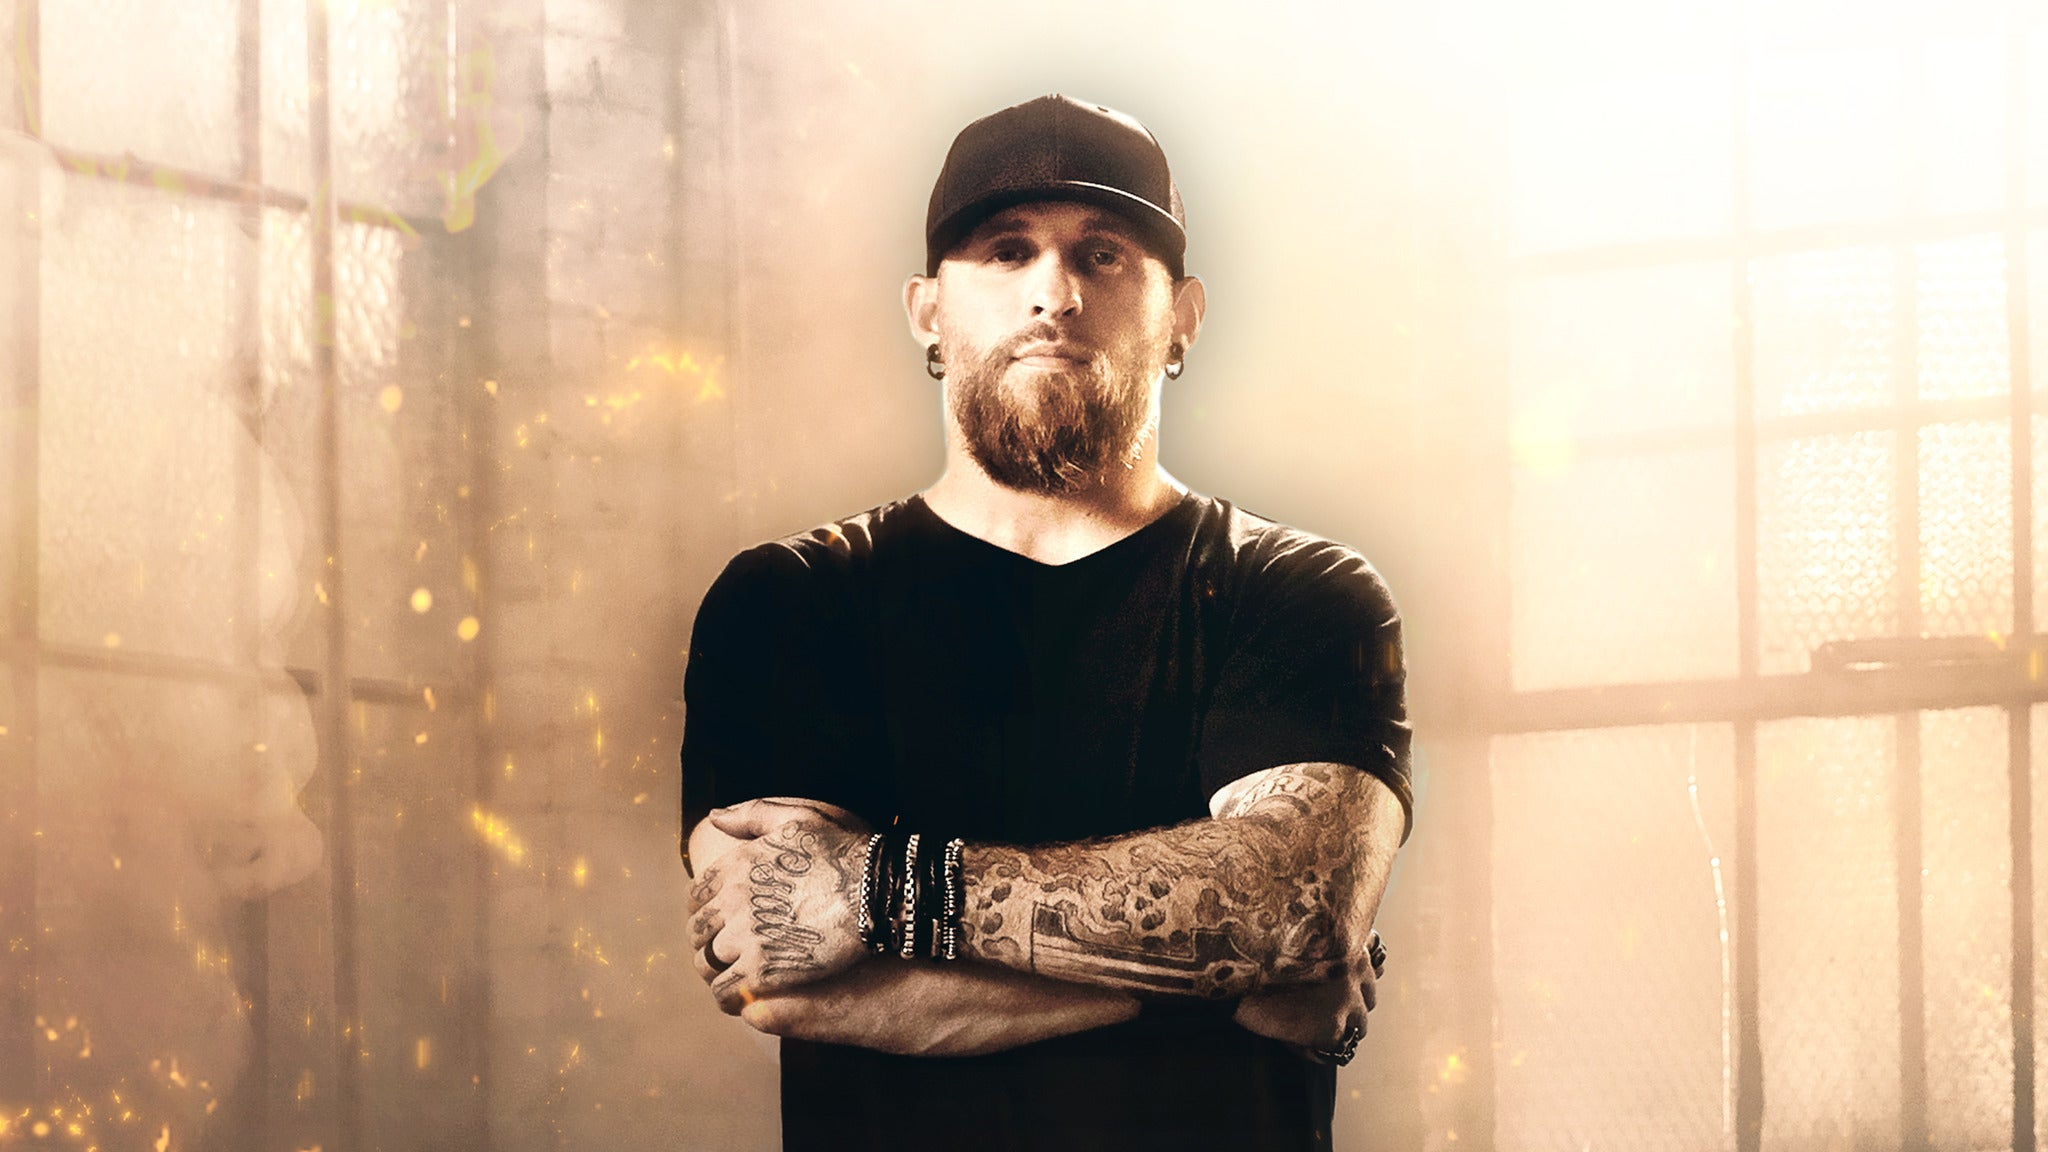 Brantley Gilbert - Fire't Up 2020 Tour